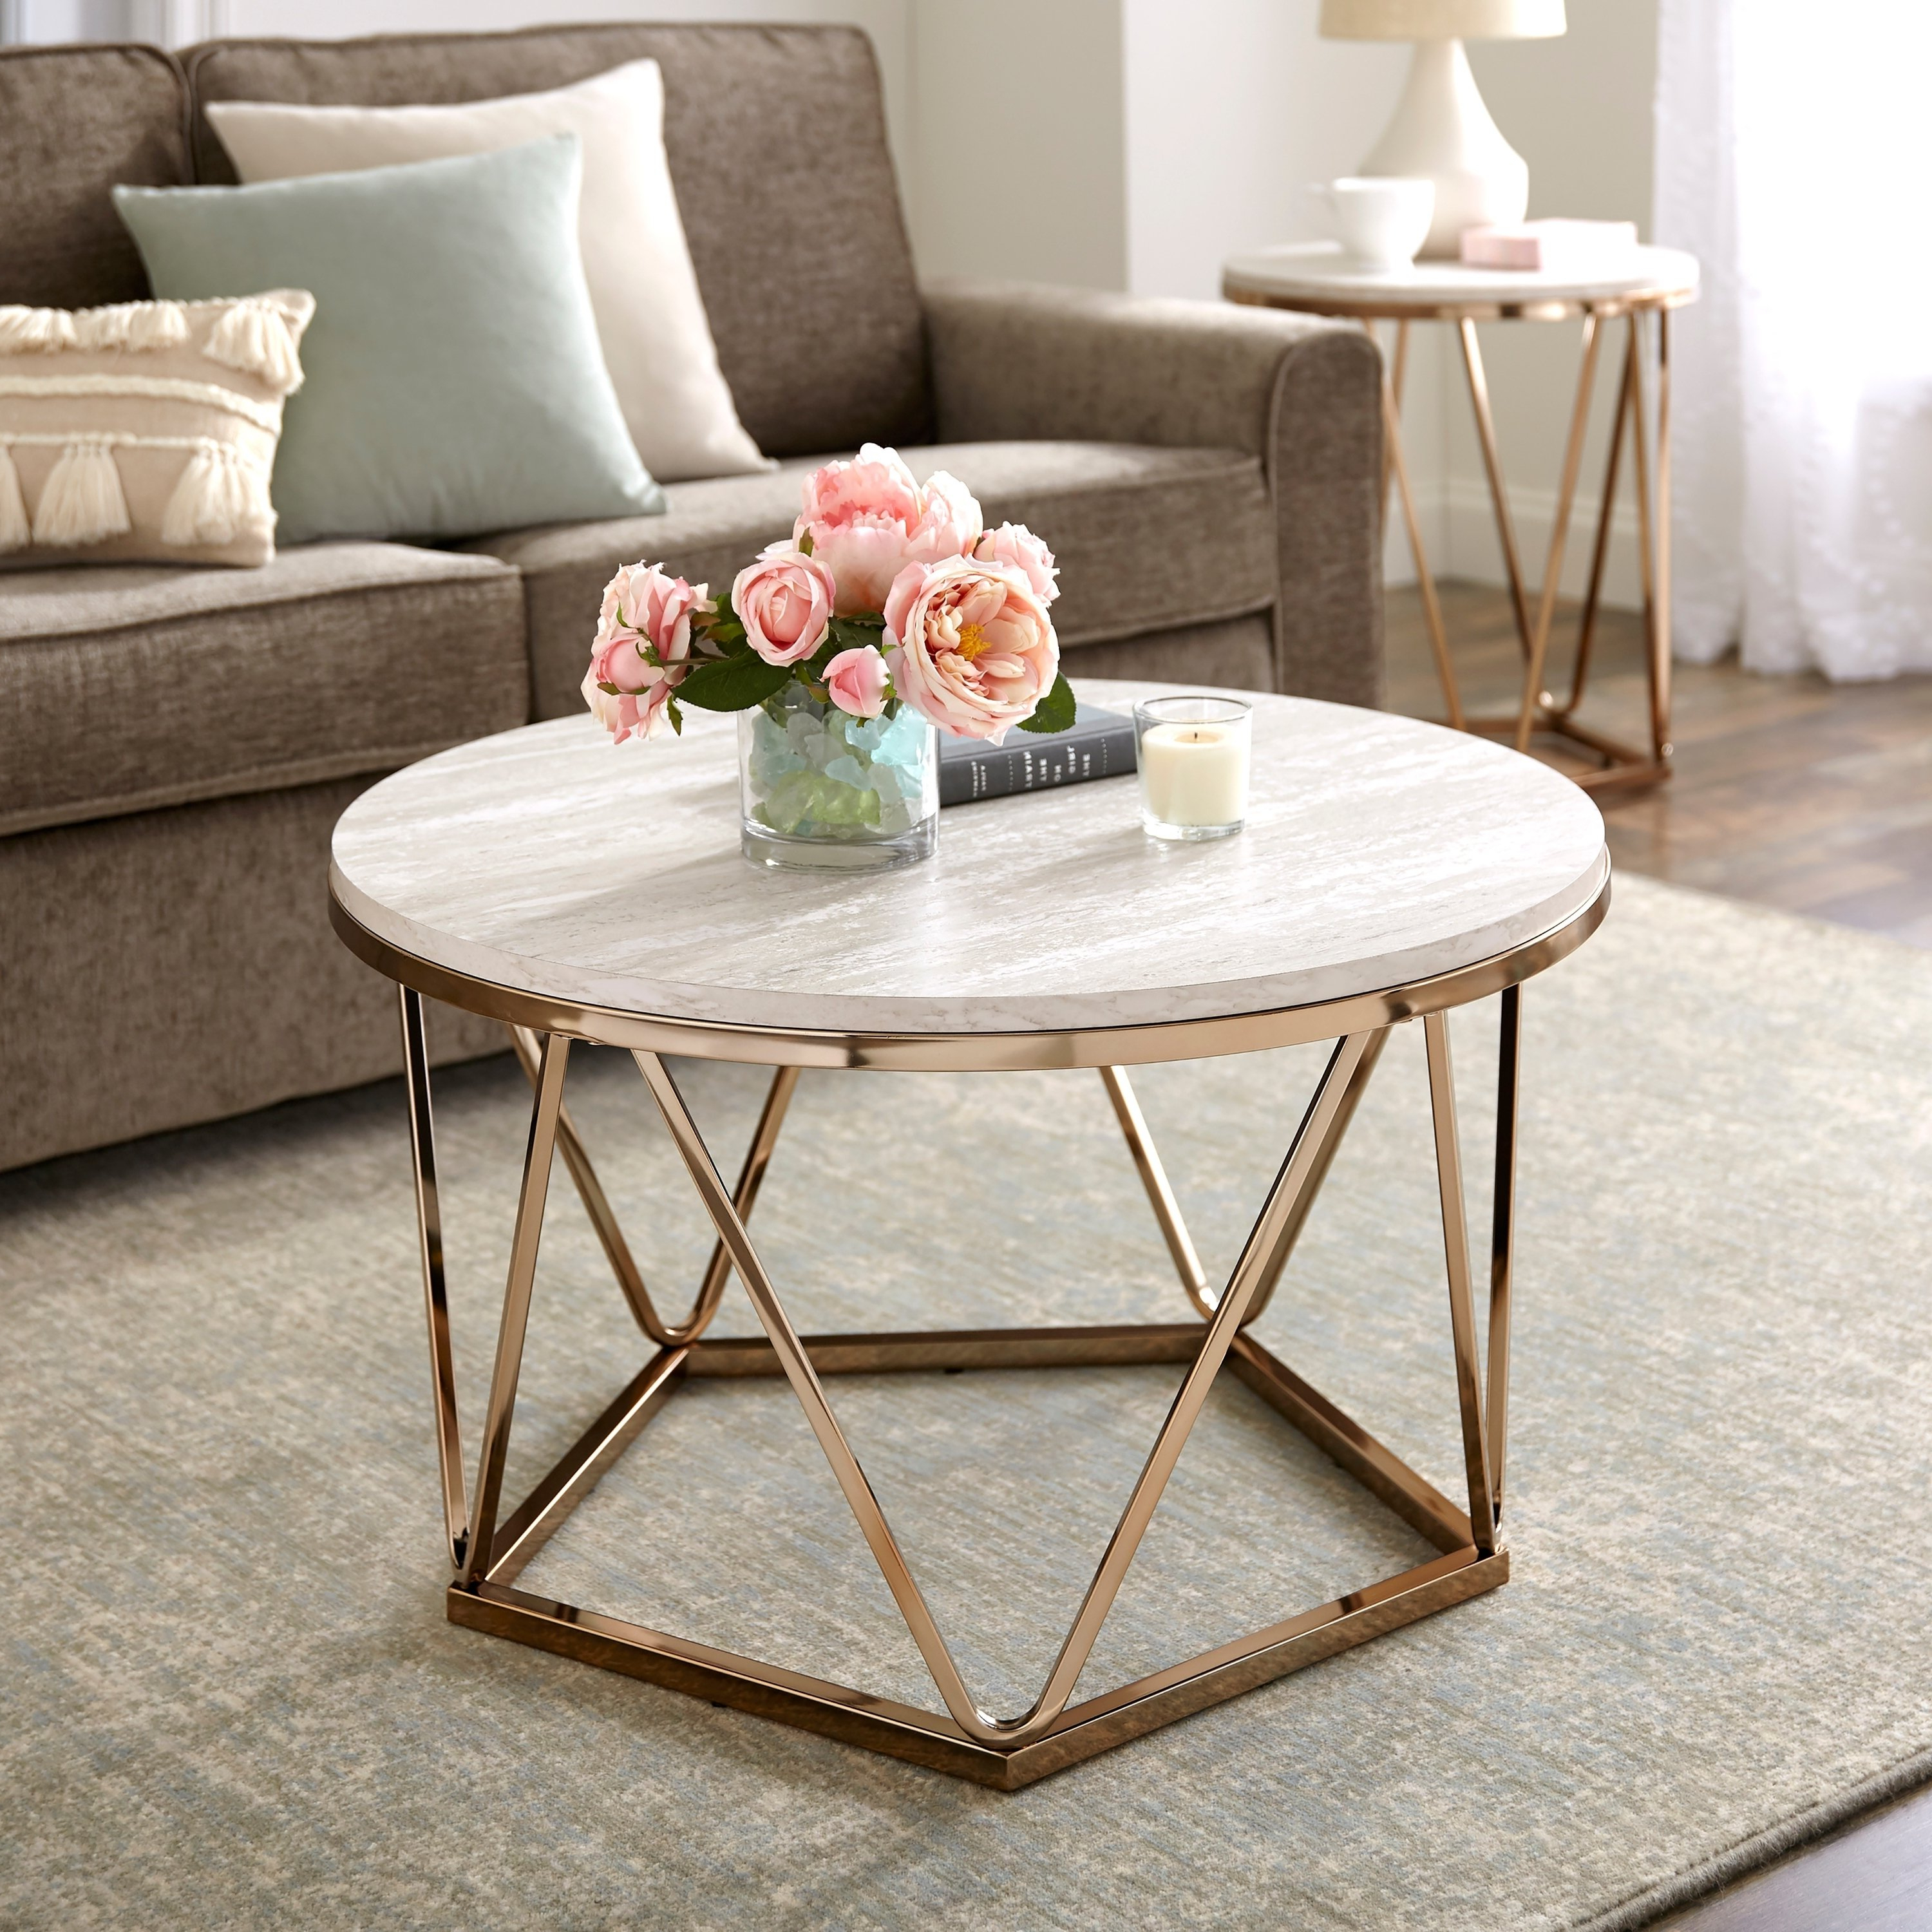 Best And Newest Silver Orchid Henderson Faux Stone Round End Tables Throughout Silver Orchid Henderson Faux Stone Round Coffee Table, Gold (View 2 of 20)